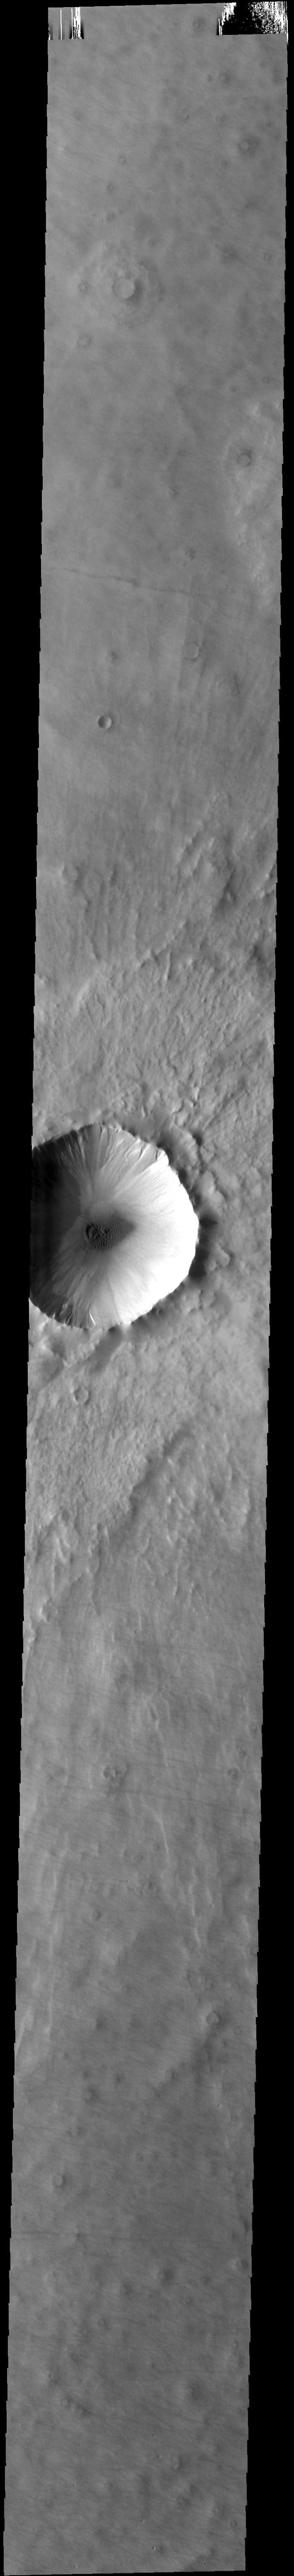 This image from NASA's 2001 Mars Odyssey spacecraft shows this unnamed crater has gullies along the inner rim and dunes on the crater floor.